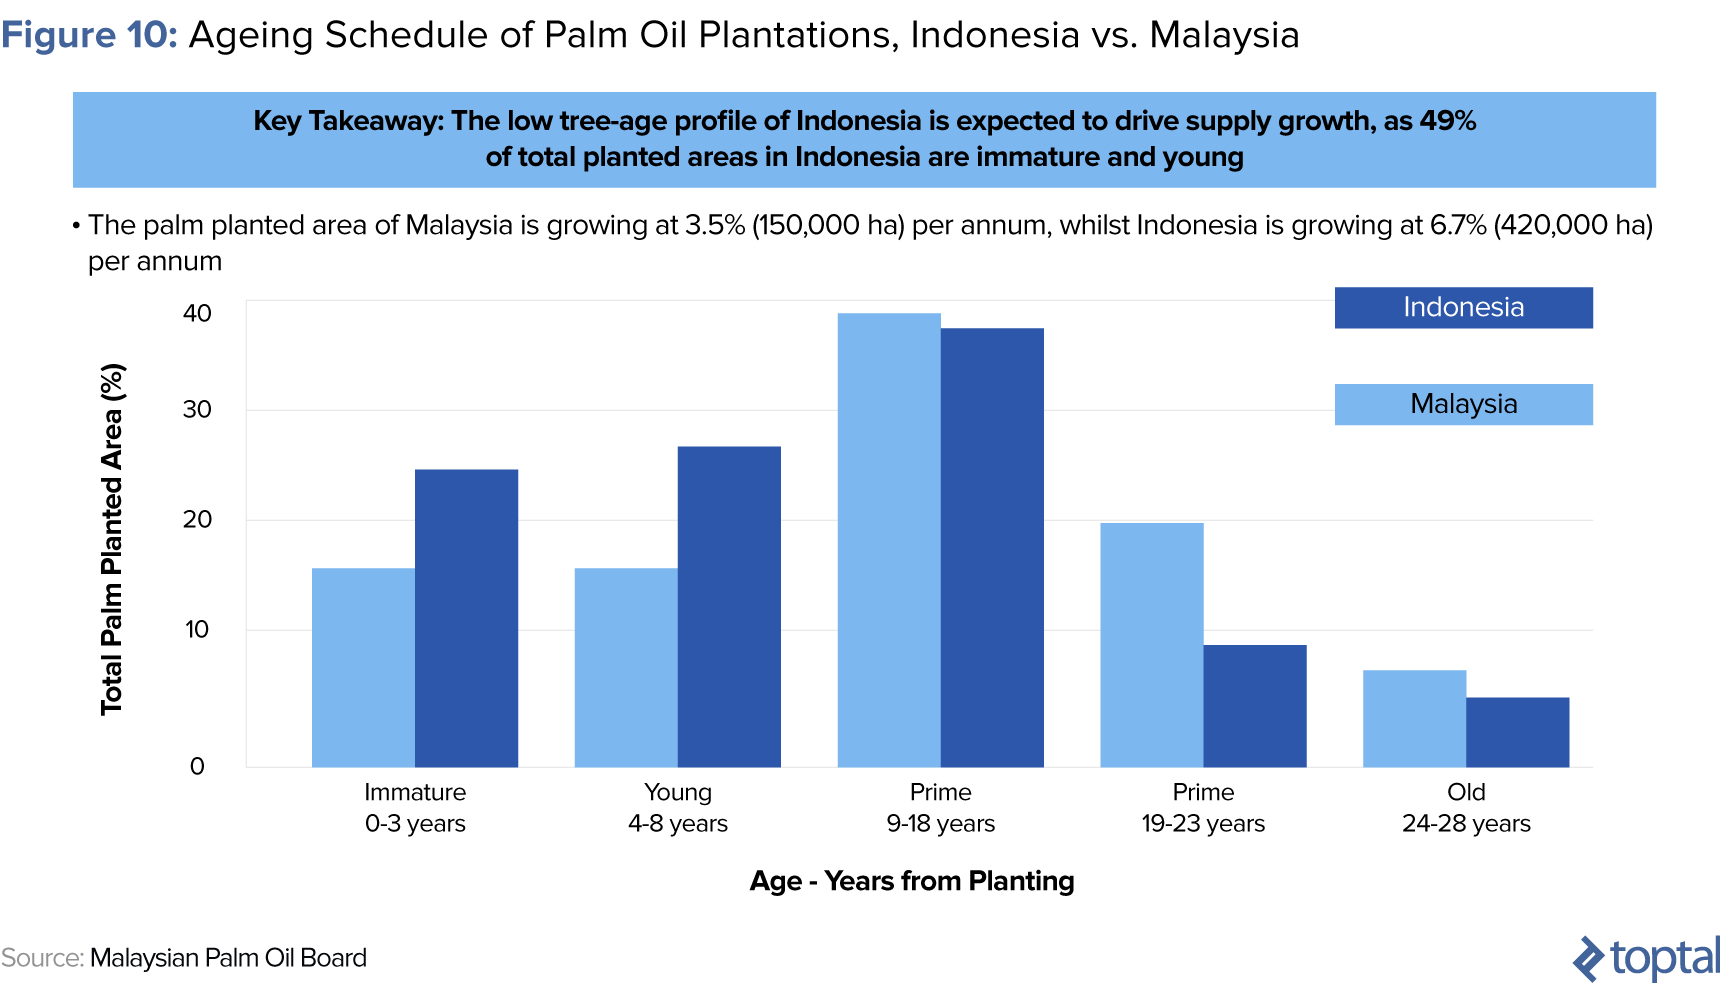 Figure 10: Aging Schedule of Palm Oil Plantations, Indonesia vs. Malaysia